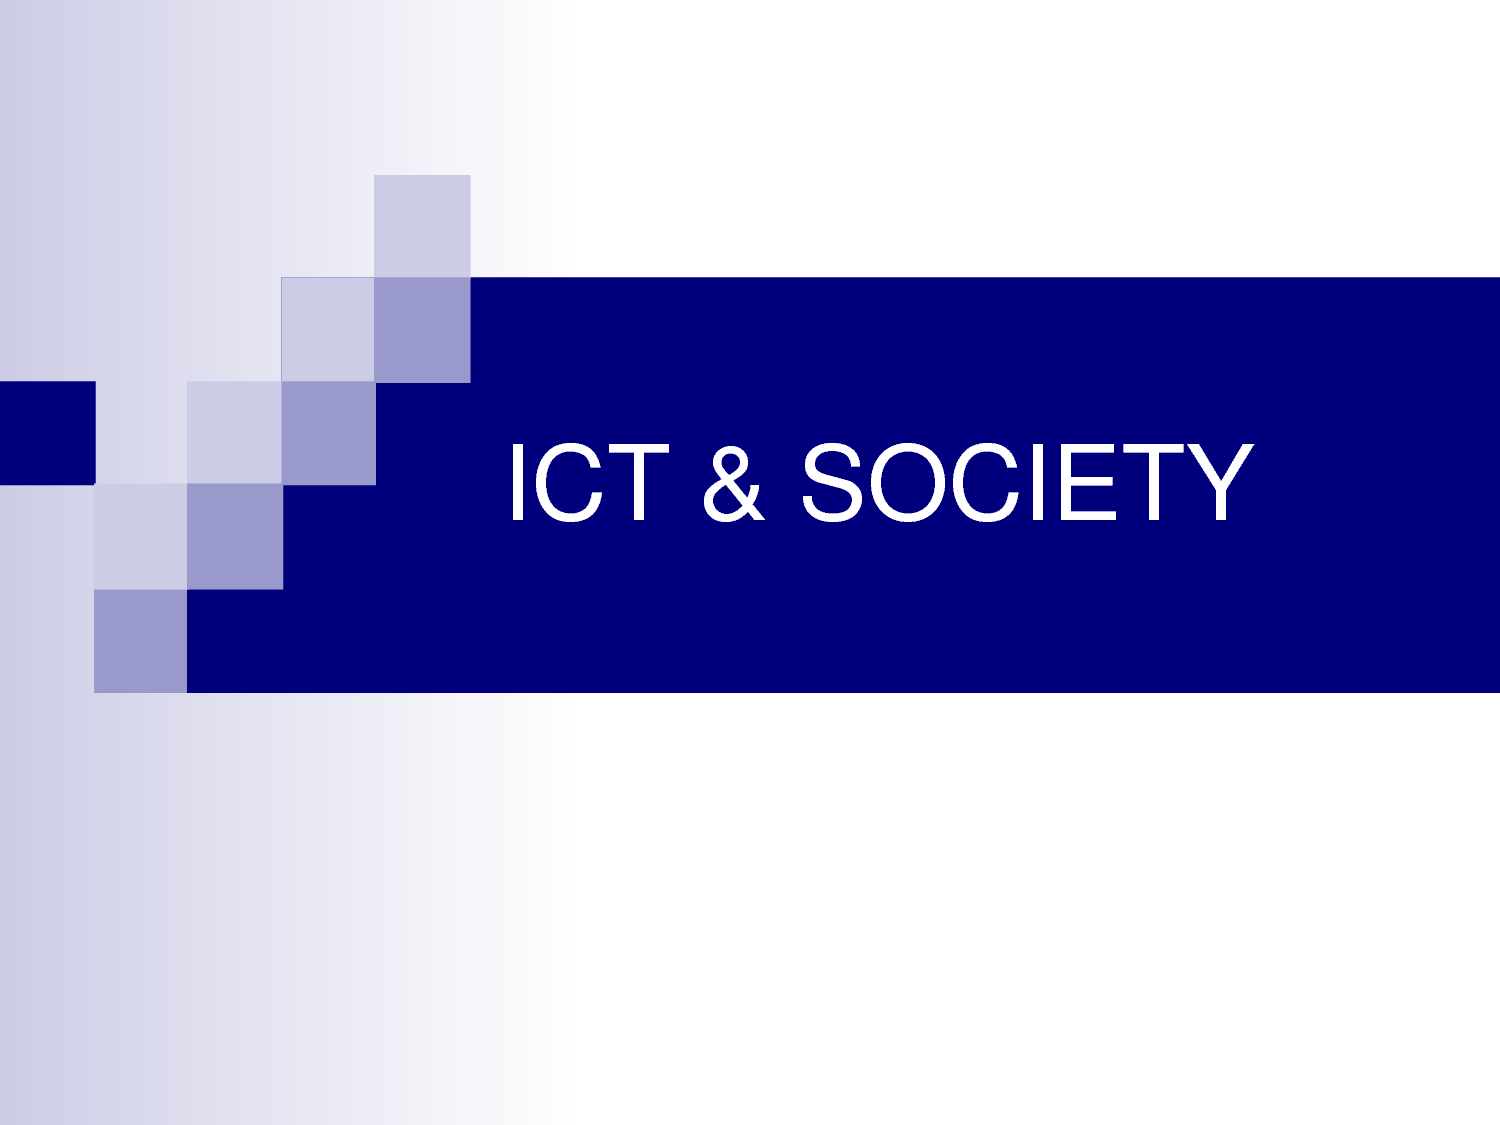 social impacts of ict